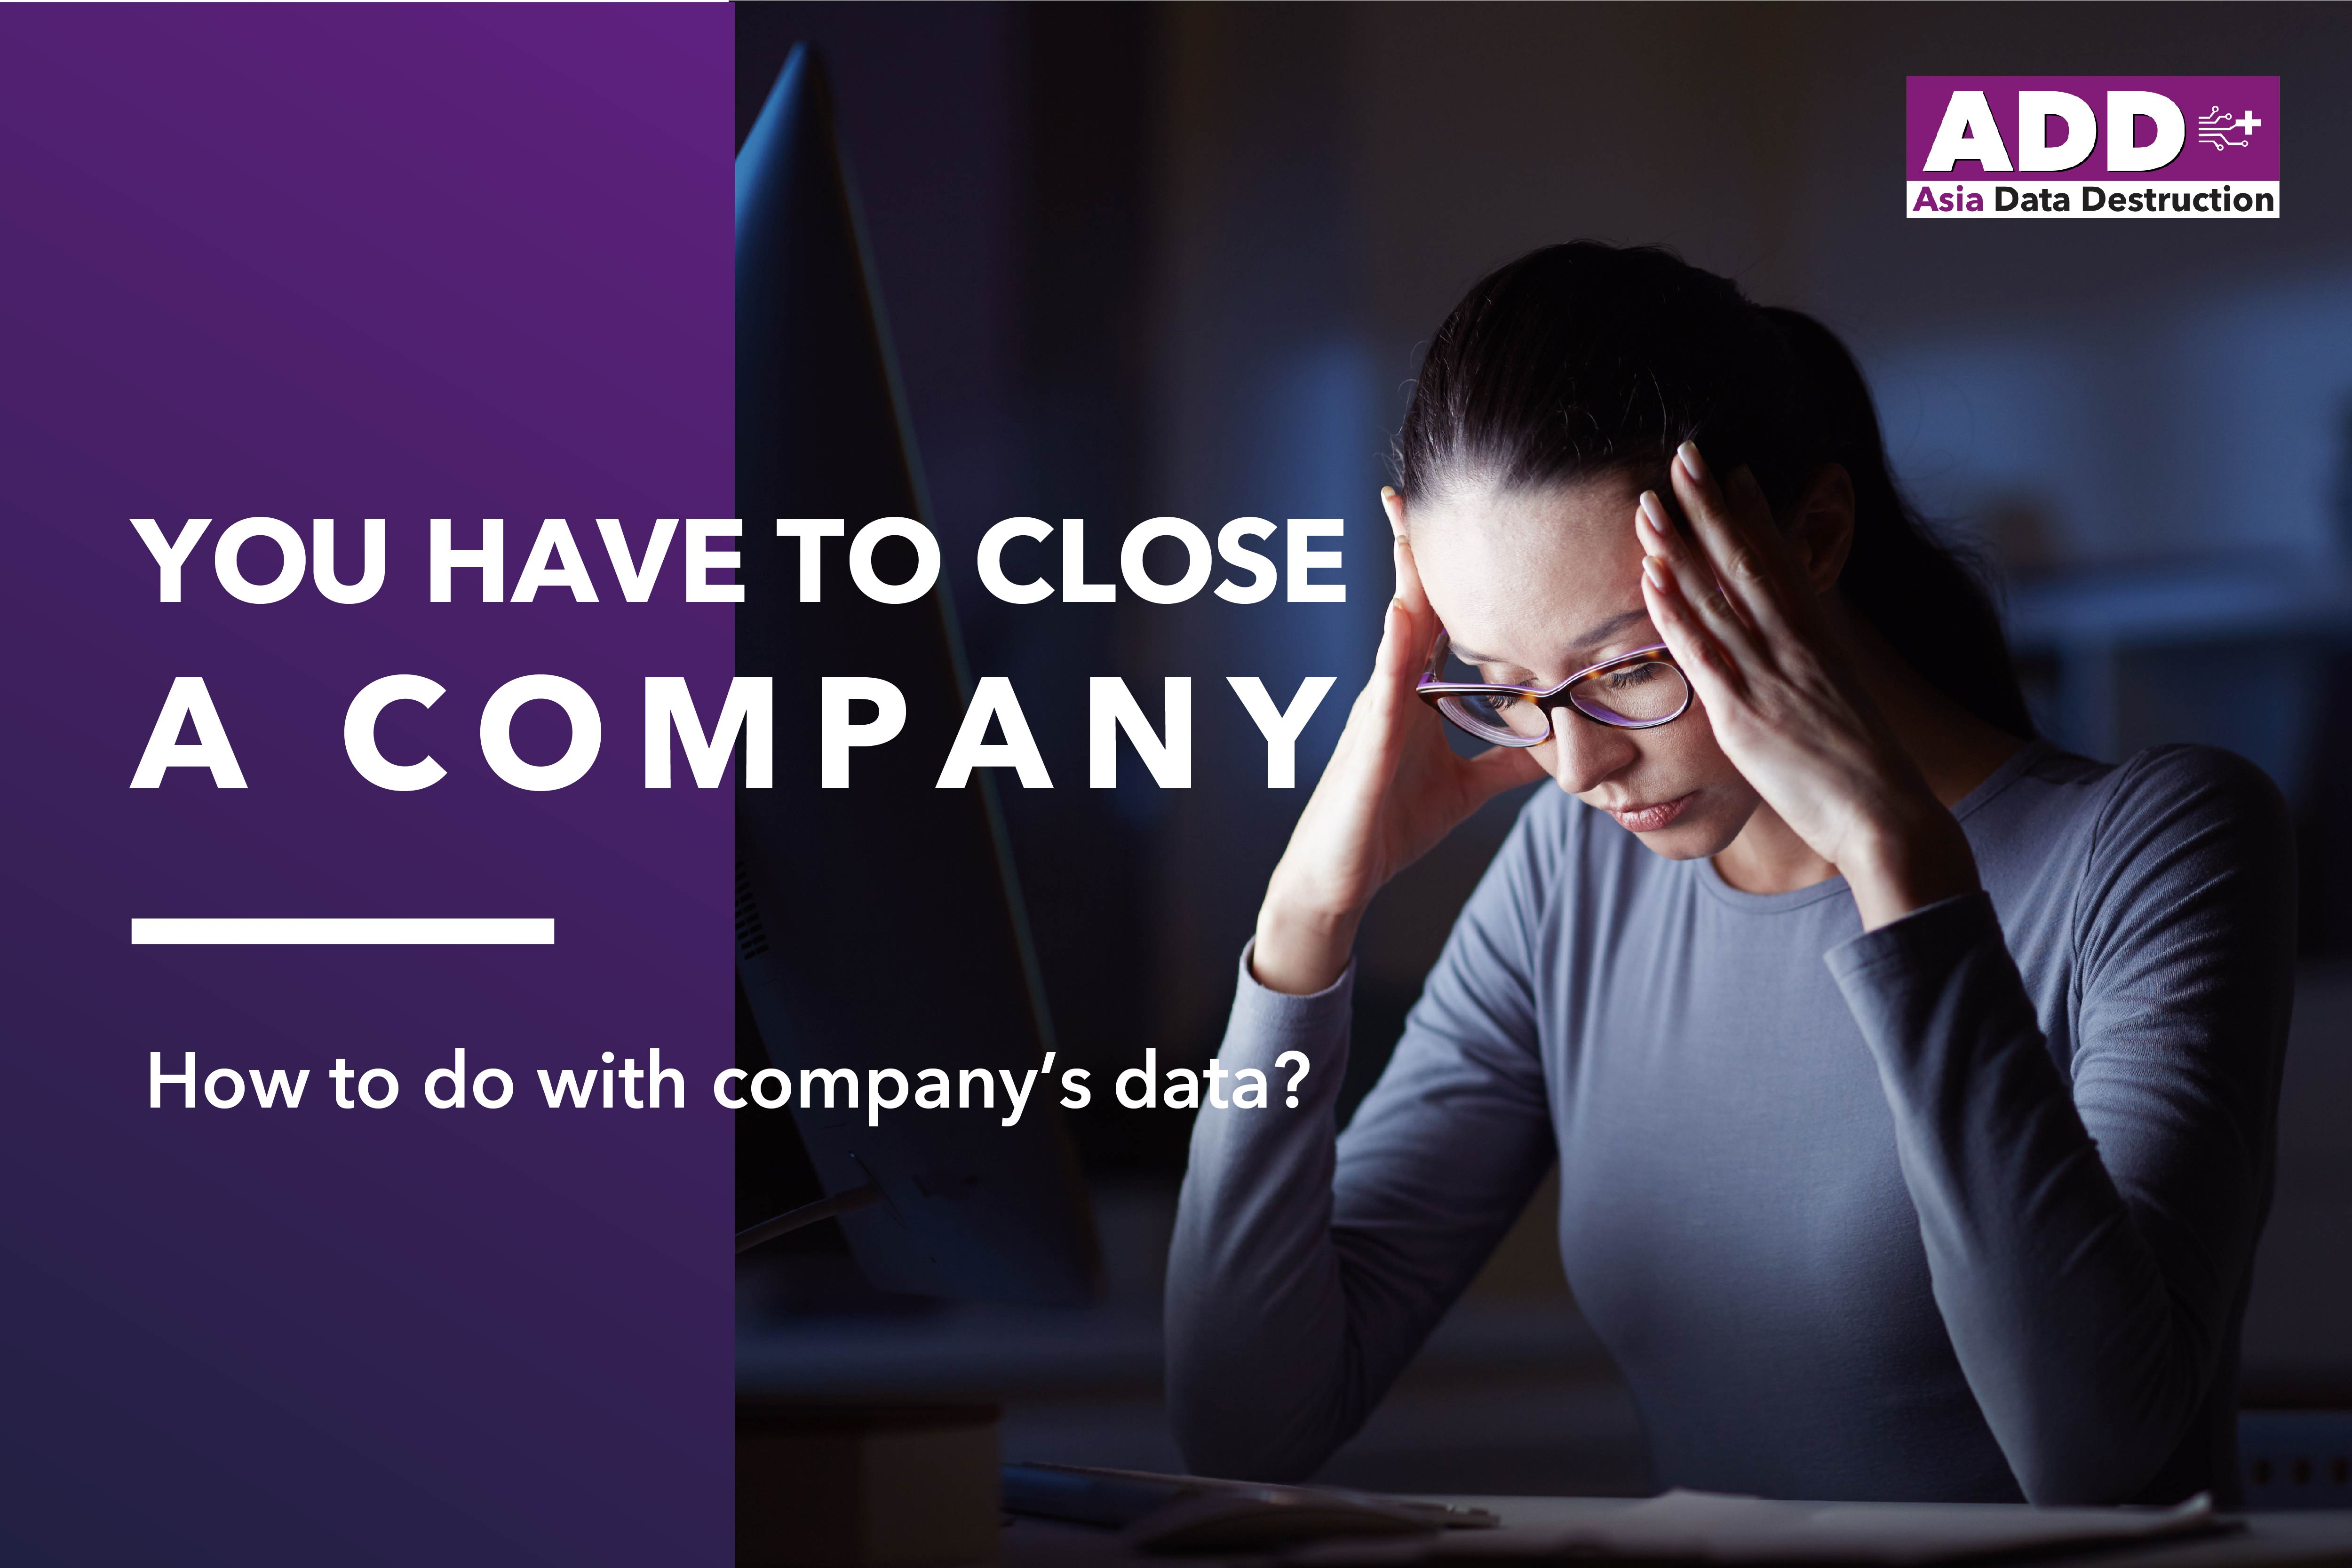 COVID-19: How to closed companies deal with their data and IT resources? 9